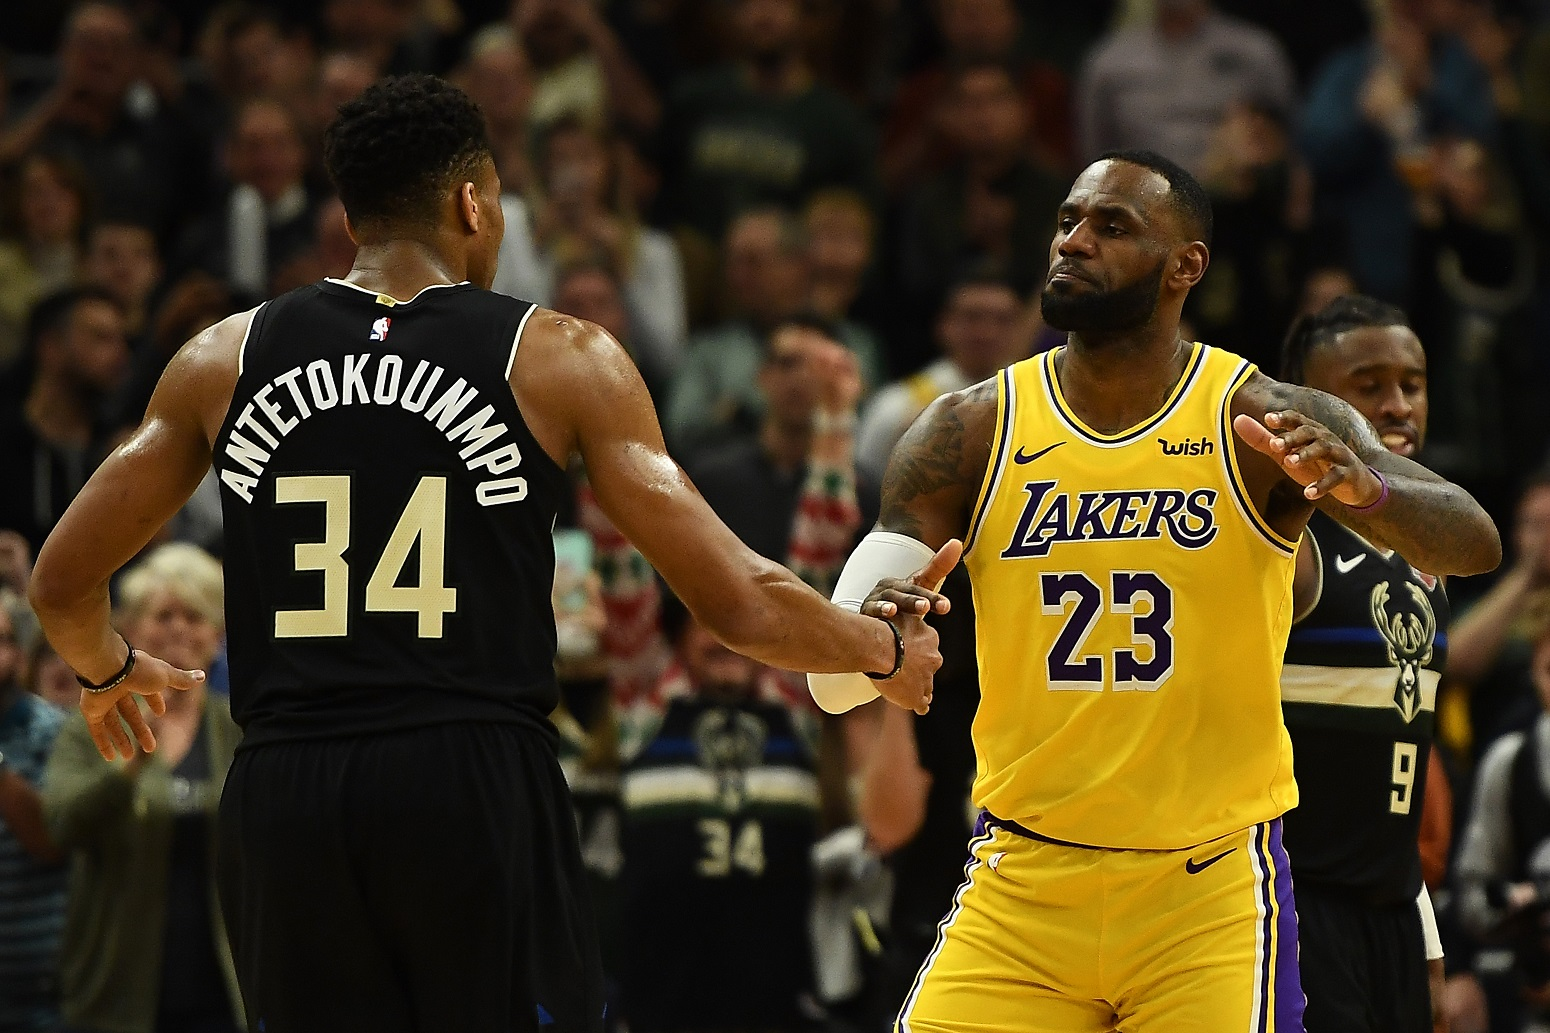 Giannis Antetokounmpo Is Insane to Believe LeBron James Will Join The Bucks